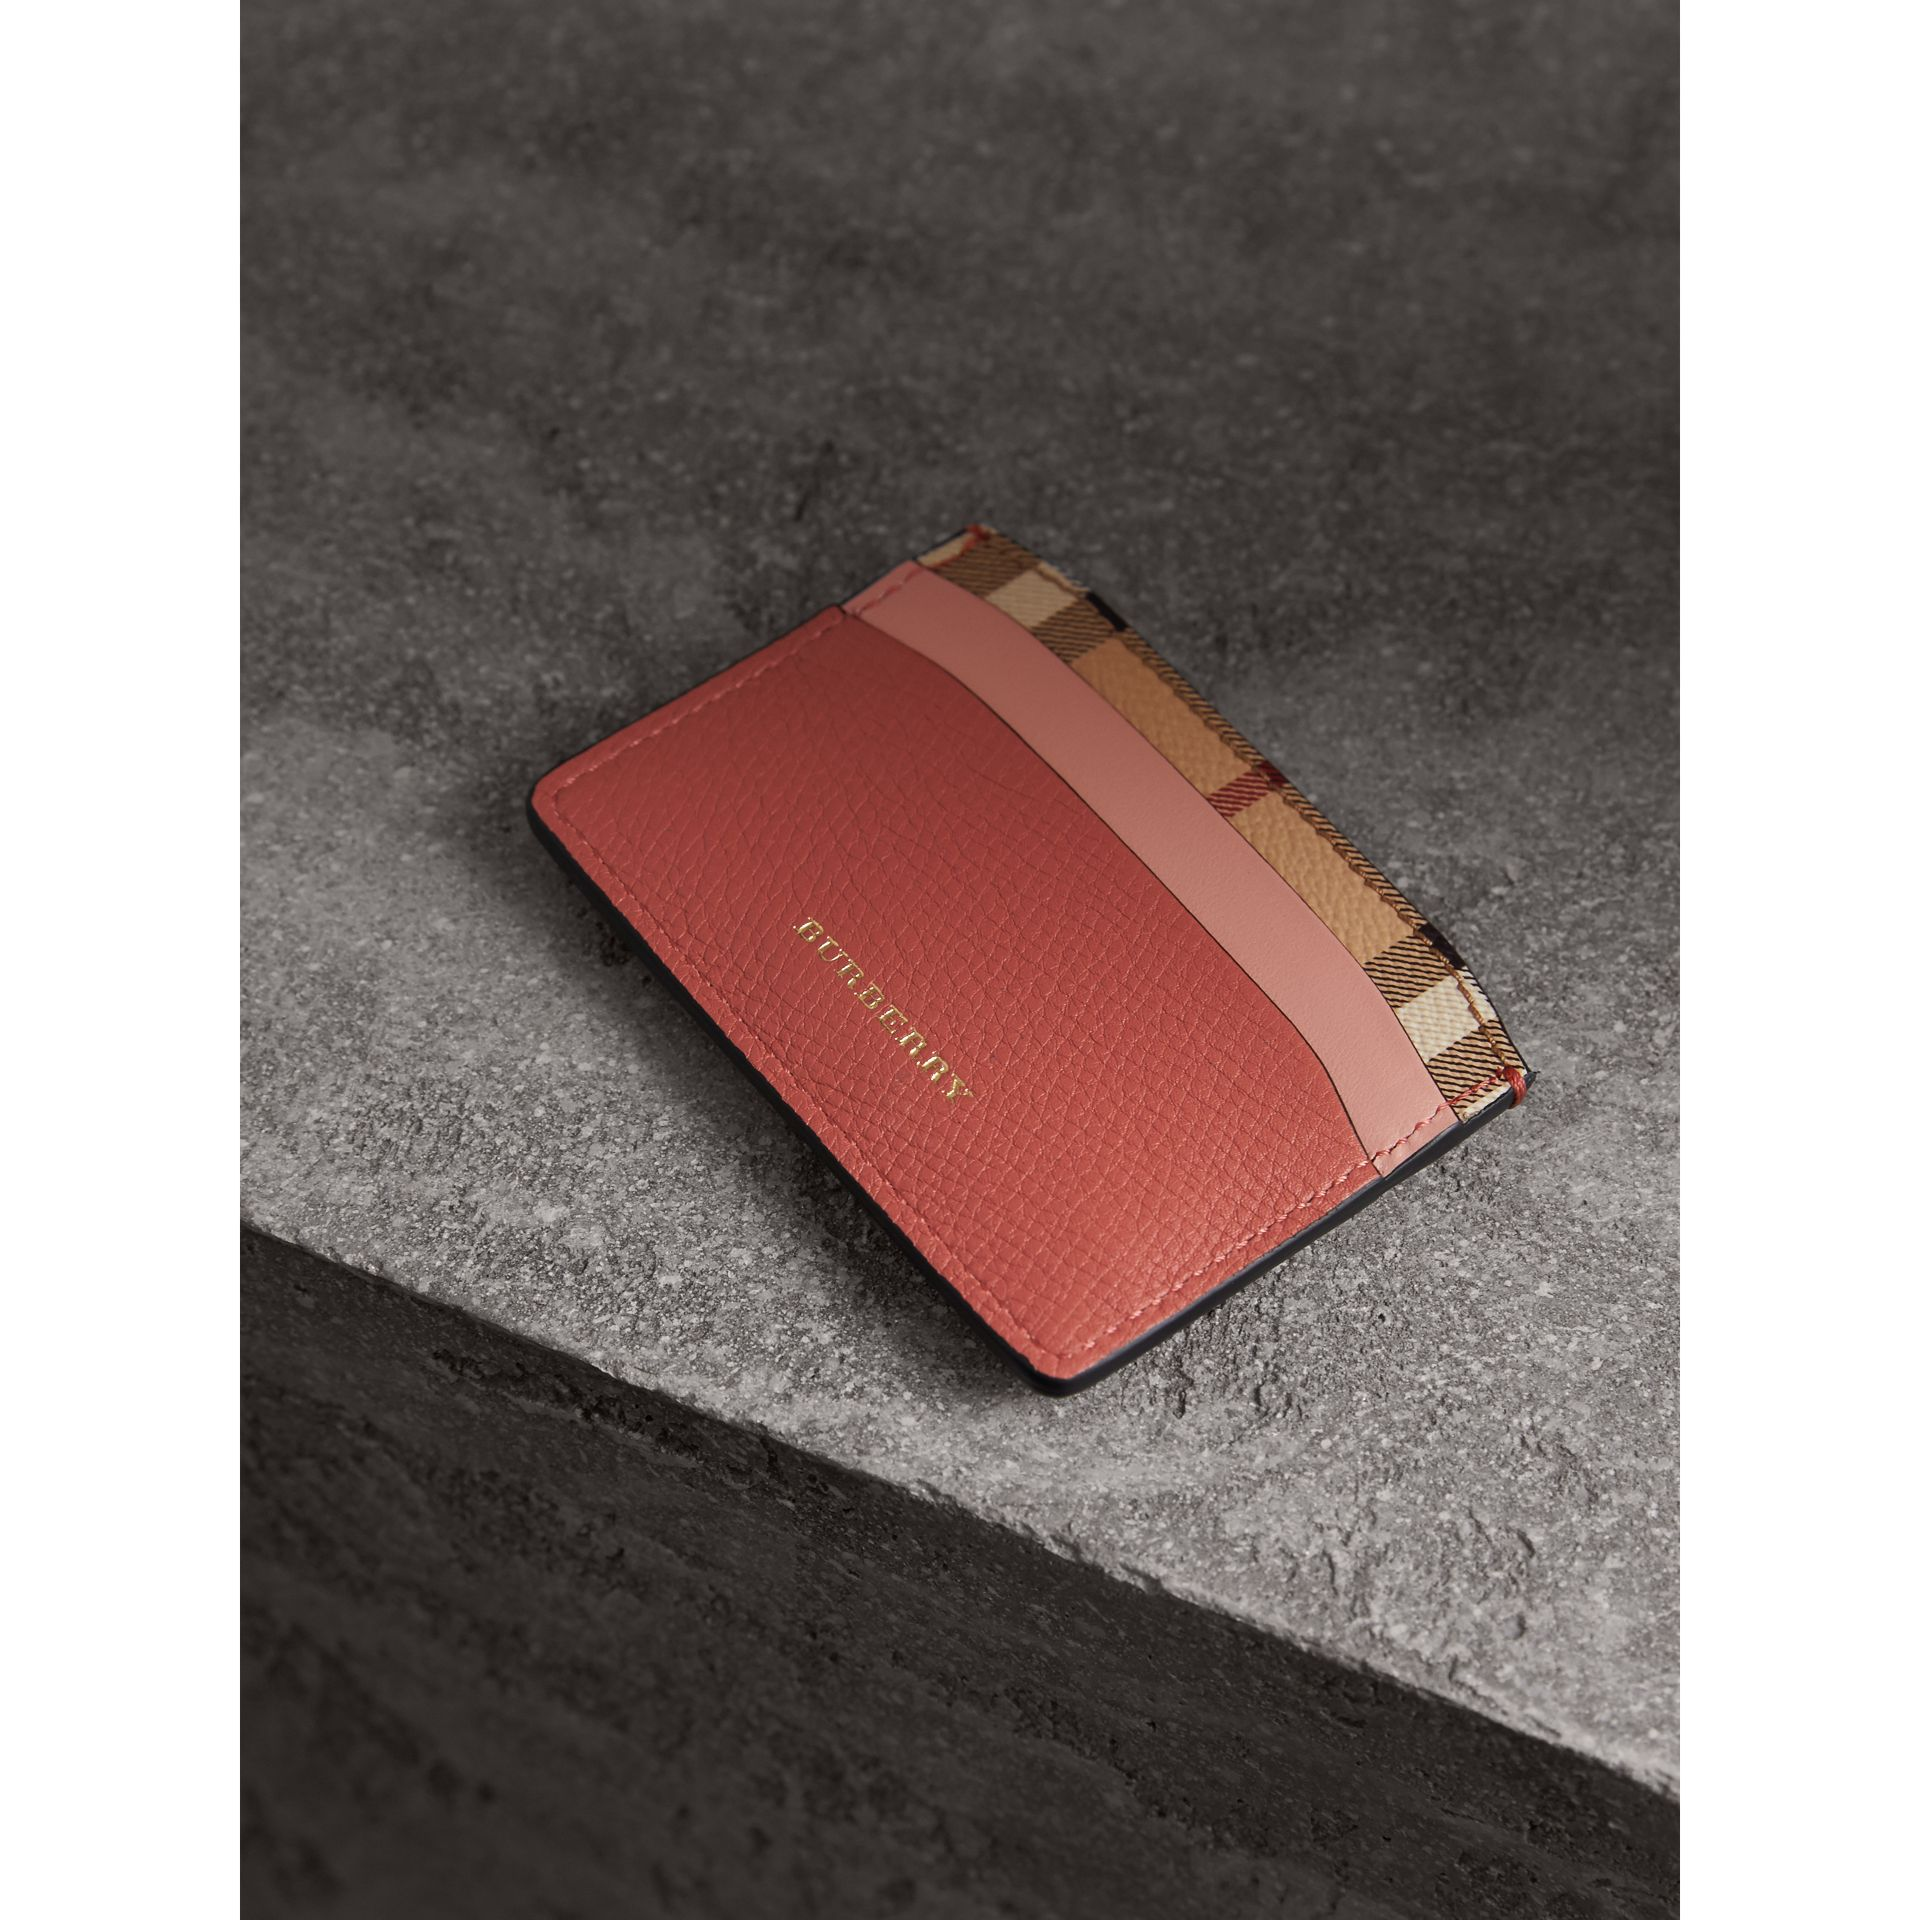 Beasts Motif Haymarket Check and Leather Card Case in Cinnamon Red - Women | Burberry - gallery image 3